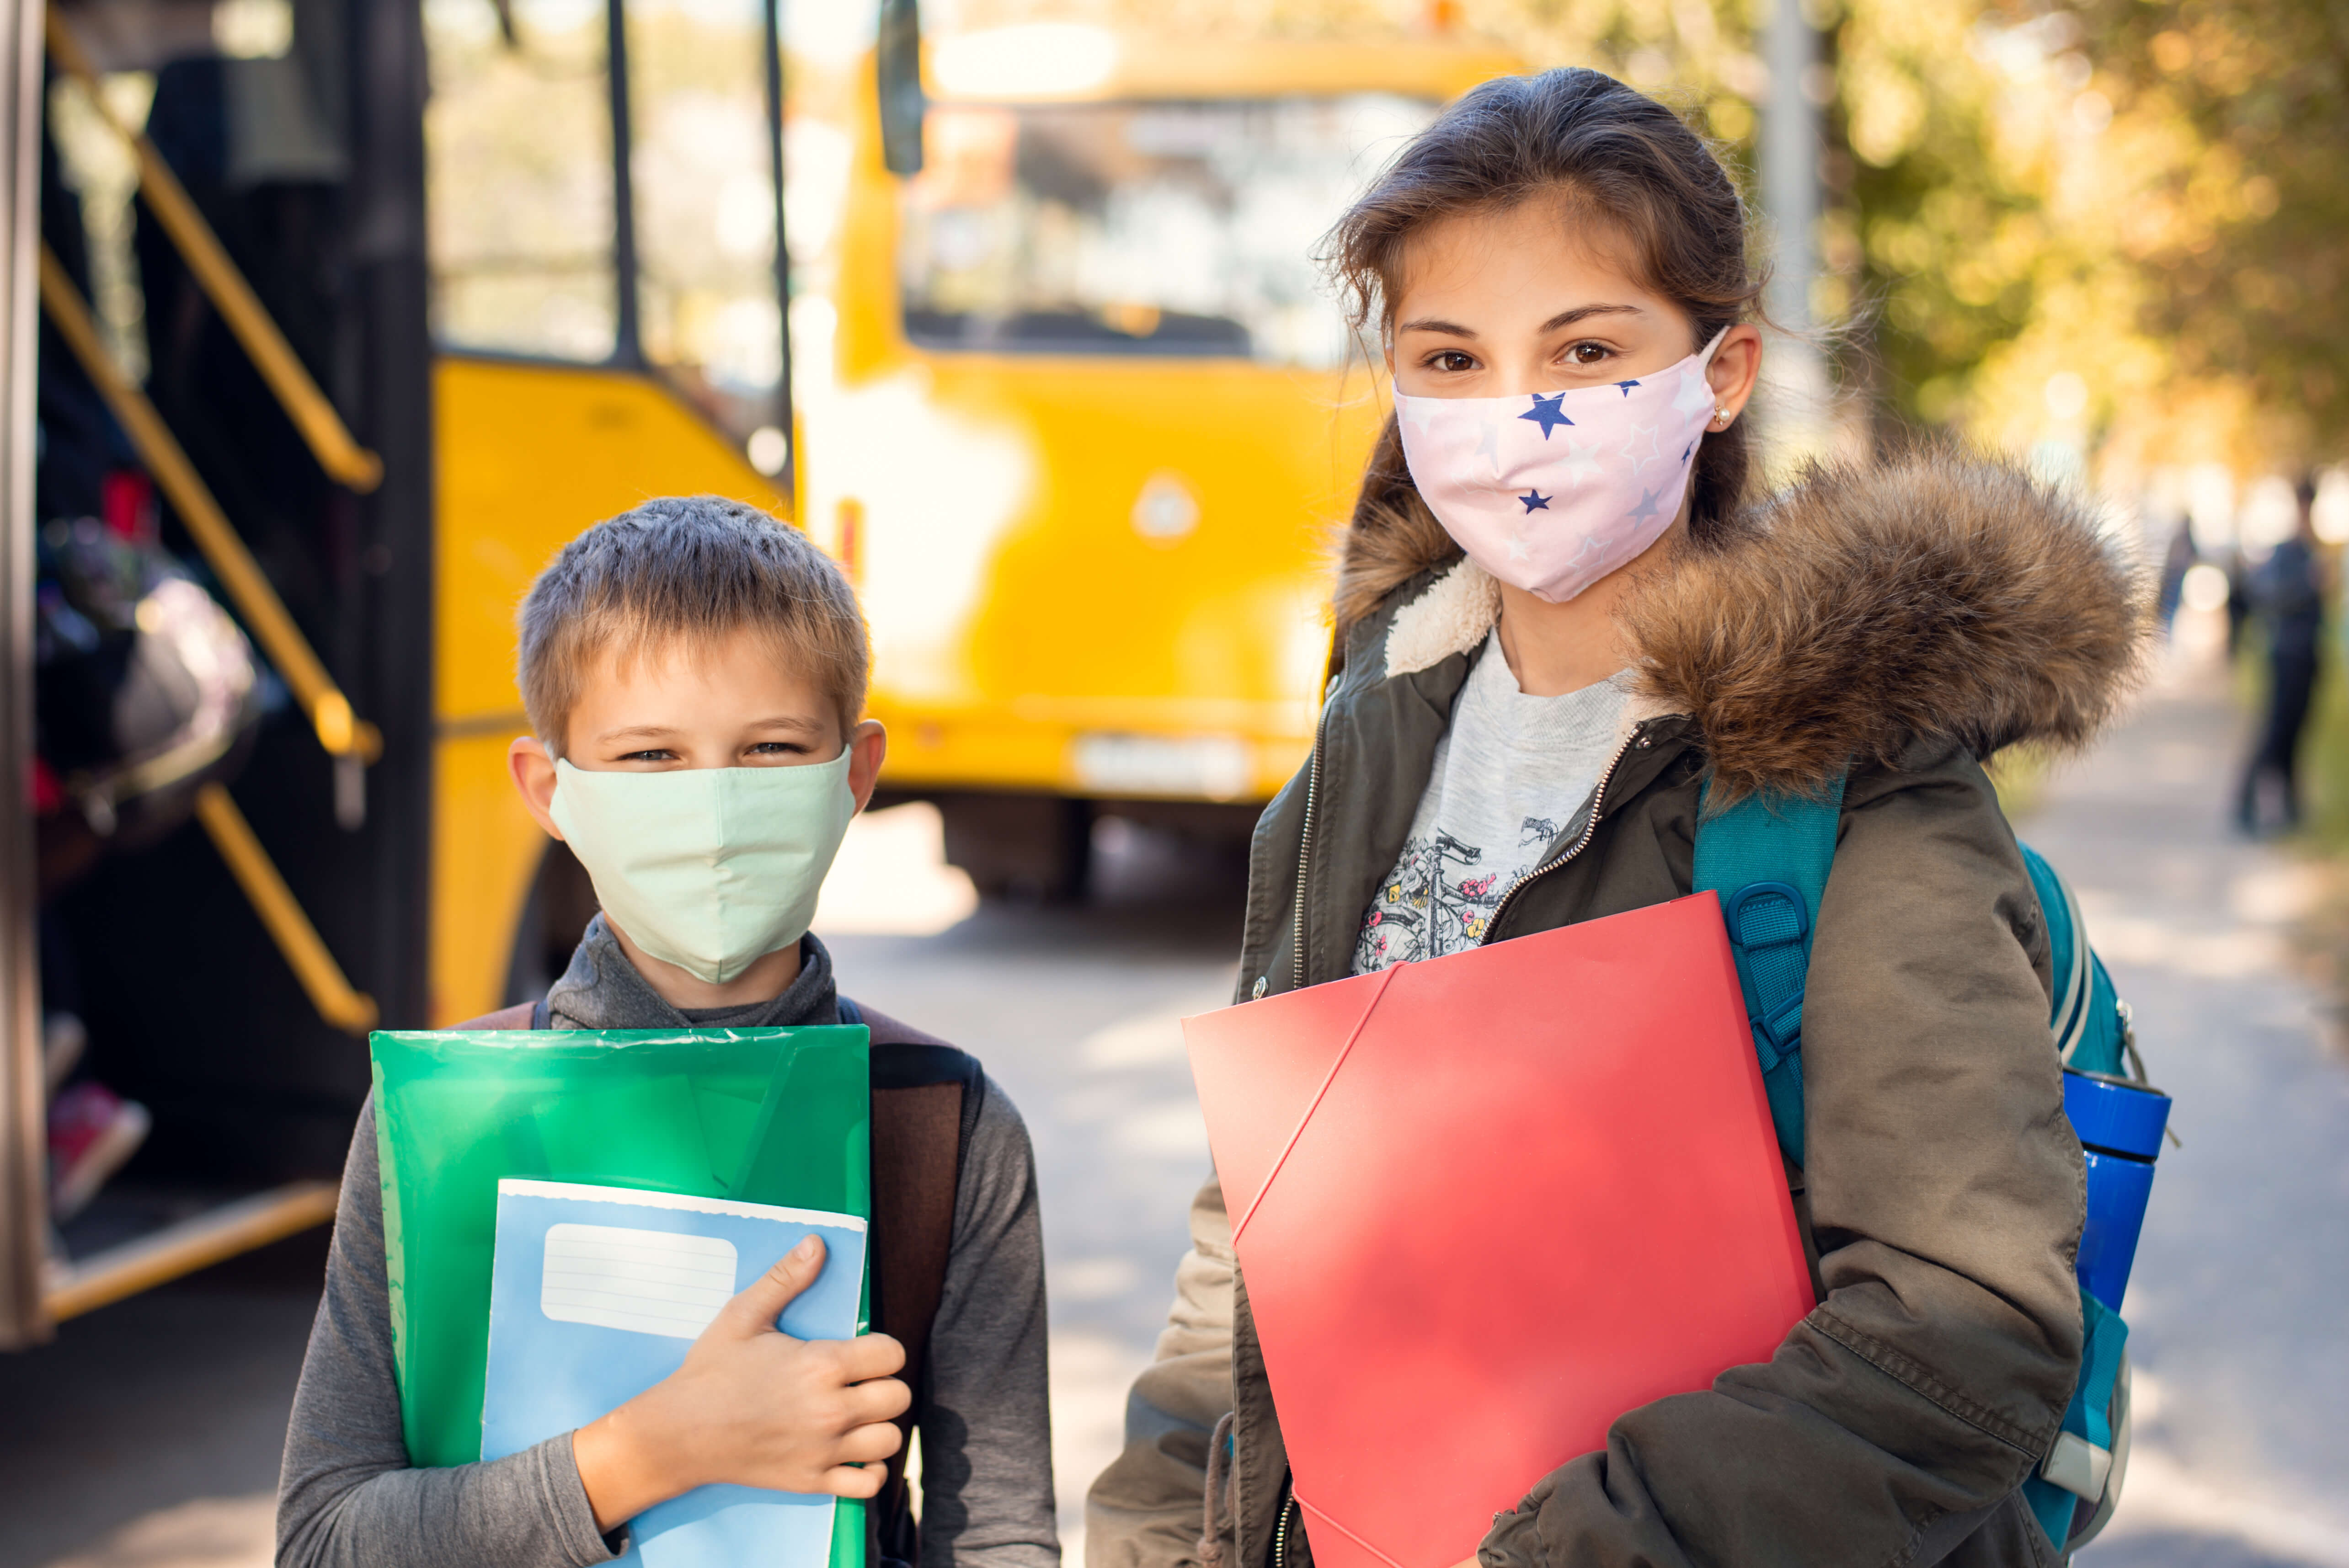 Kids in masks learning at school.